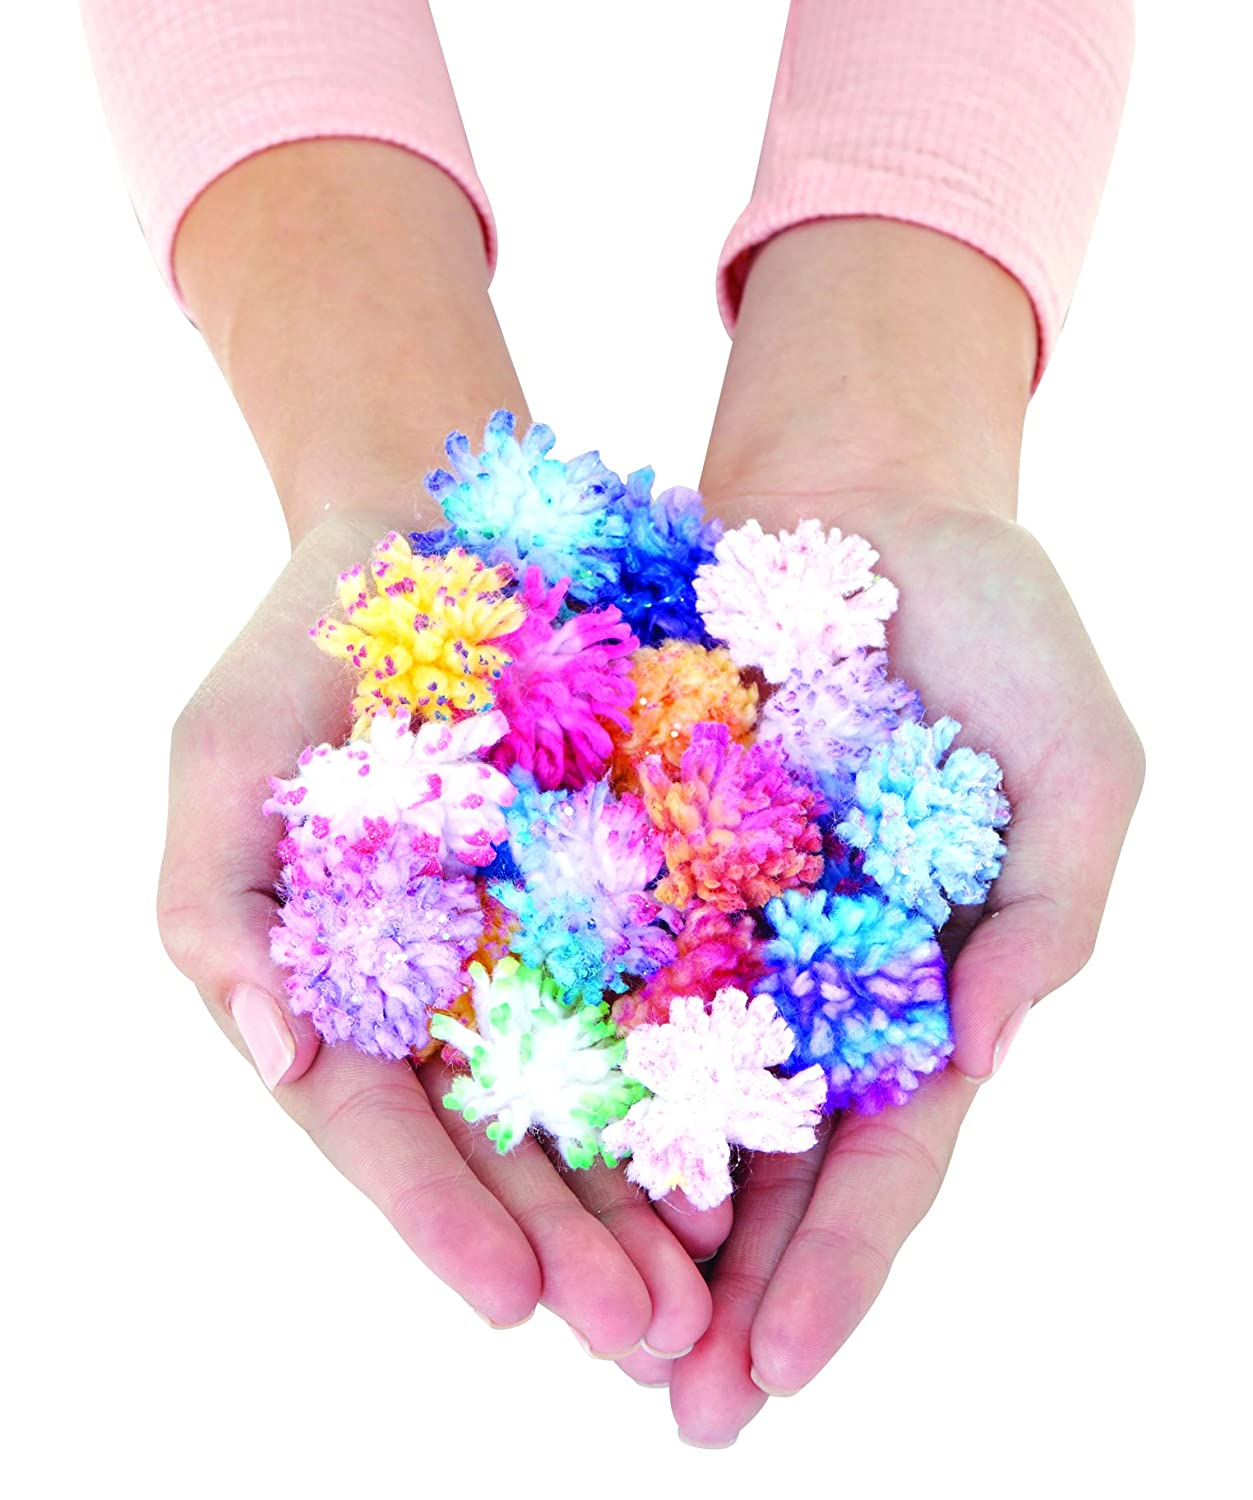 Look at all the mini pom poms you can makes with this creative toys for kids